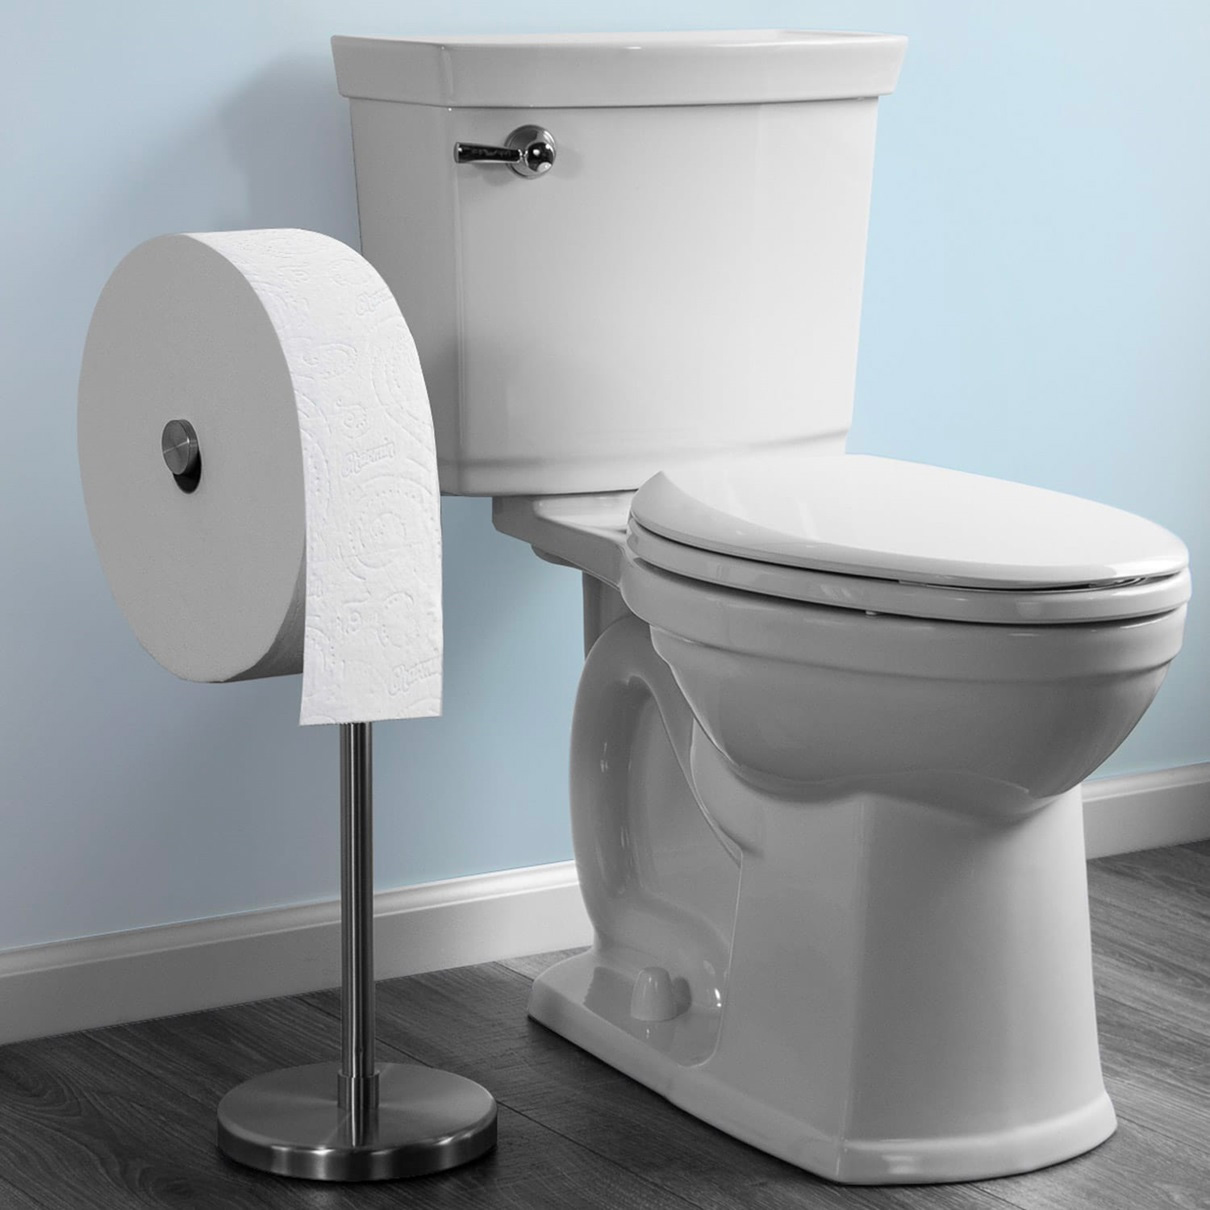 Charmin Introduces Long-lasting Forever Roll at werd.com